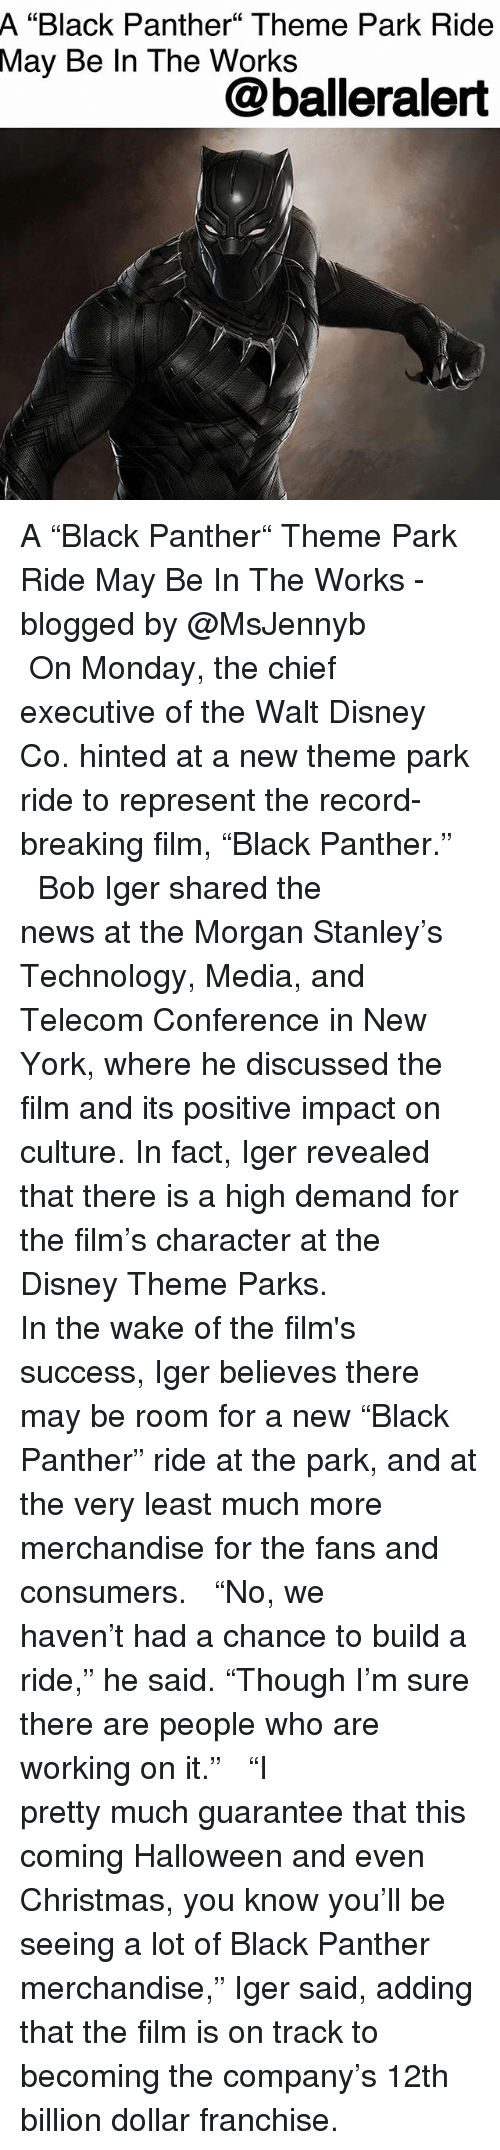 "Christmas, Disney, and Halloween: A  ""Black Panther"" Theme Park Ride  May  Be In The Works  @balleralert A ""Black Panther"" Theme Park Ride May Be In The Works - blogged by @MsJennyb ⠀⠀⠀⠀⠀⠀⠀ ⠀⠀⠀⠀⠀⠀⠀ On Monday, the chief executive of the Walt Disney Co. hinted at a new theme park ride to represent the record-breaking film, ""Black Panther."" ⠀⠀⠀⠀⠀⠀⠀ ⠀⠀⠀⠀⠀⠀⠀ Bob Iger shared the news at the Morgan Stanley's Technology, Media, and Telecom Conference in New York, where he discussed the film and its positive impact on culture. In fact, Iger revealed that there is a high demand for the film's character at the Disney Theme Parks. ⠀⠀⠀⠀⠀⠀⠀ ⠀⠀⠀⠀⠀⠀⠀ In the wake of the film's success, Iger believes there may be room for a new ""Black Panther"" ride at the park, and at the very least much more merchandise for the fans and consumers. ⠀⠀⠀⠀⠀⠀⠀ ⠀⠀⠀⠀⠀⠀⠀ ""No, we haven't had a chance to build a ride,"" he said. ""Though I'm sure there are people who are working on it."" ⠀⠀⠀⠀⠀⠀⠀ ⠀⠀⠀⠀⠀⠀⠀ ""I pretty much guarantee that this coming Halloween and even Christmas, you know you'll be seeing a lot of Black Panther merchandise,"" Iger said, adding that the film is on track to becoming the company's 12th billion dollar franchise."